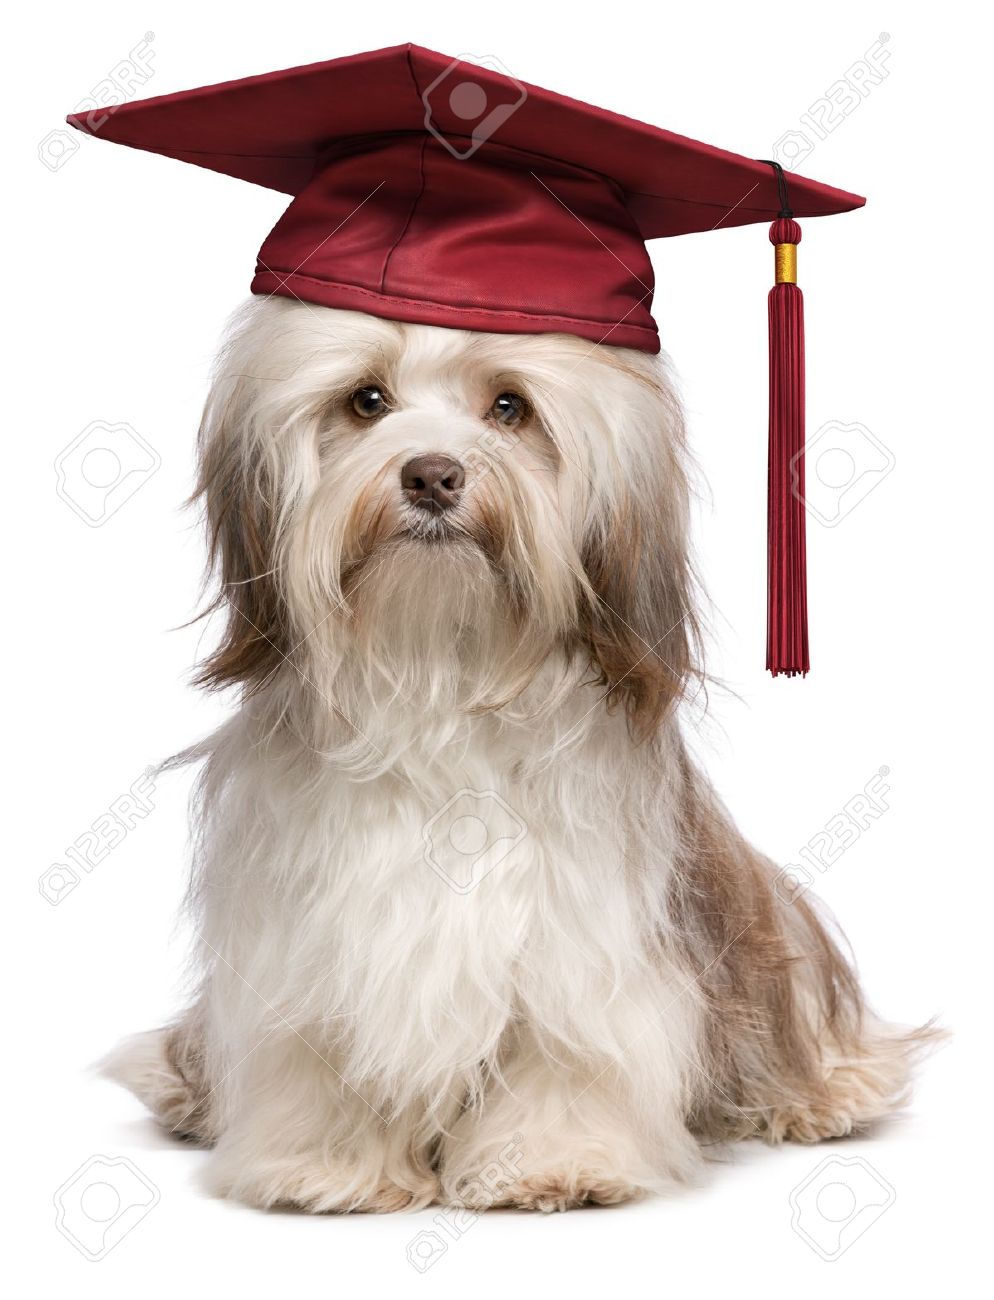 Contemporary Dog Cap And Gown Gift - Images for wedding gown ideas ...